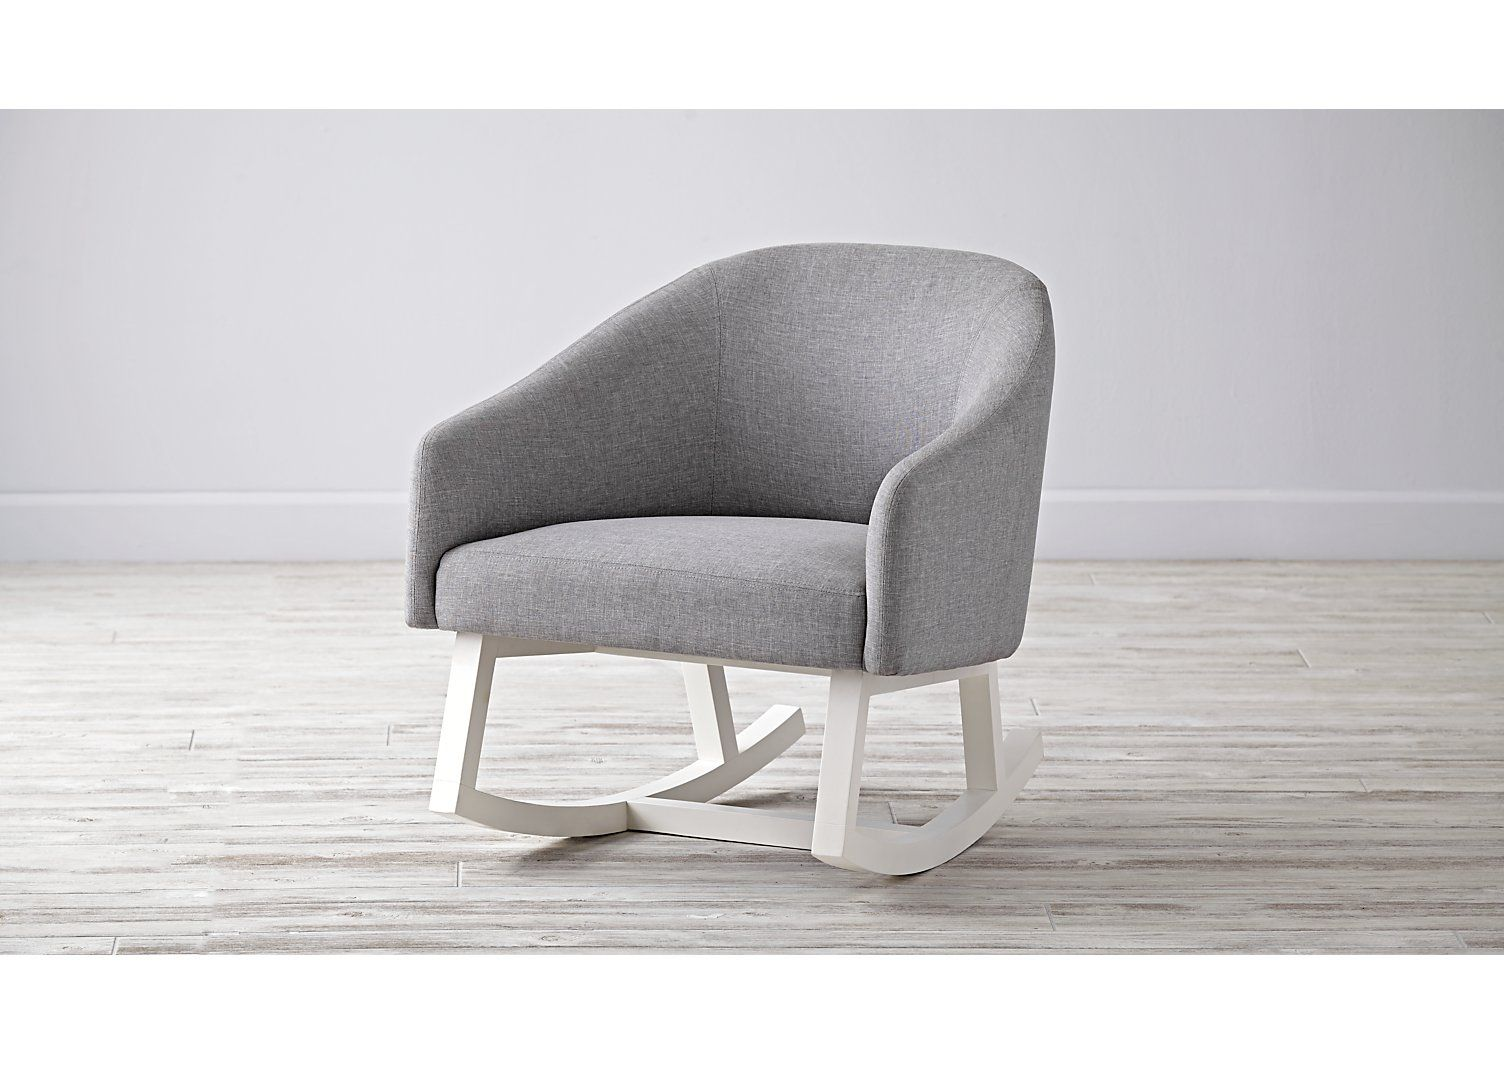 Beau Neo Rocking Chair. Modern Rocking ChairsNursing ChairNursery ...